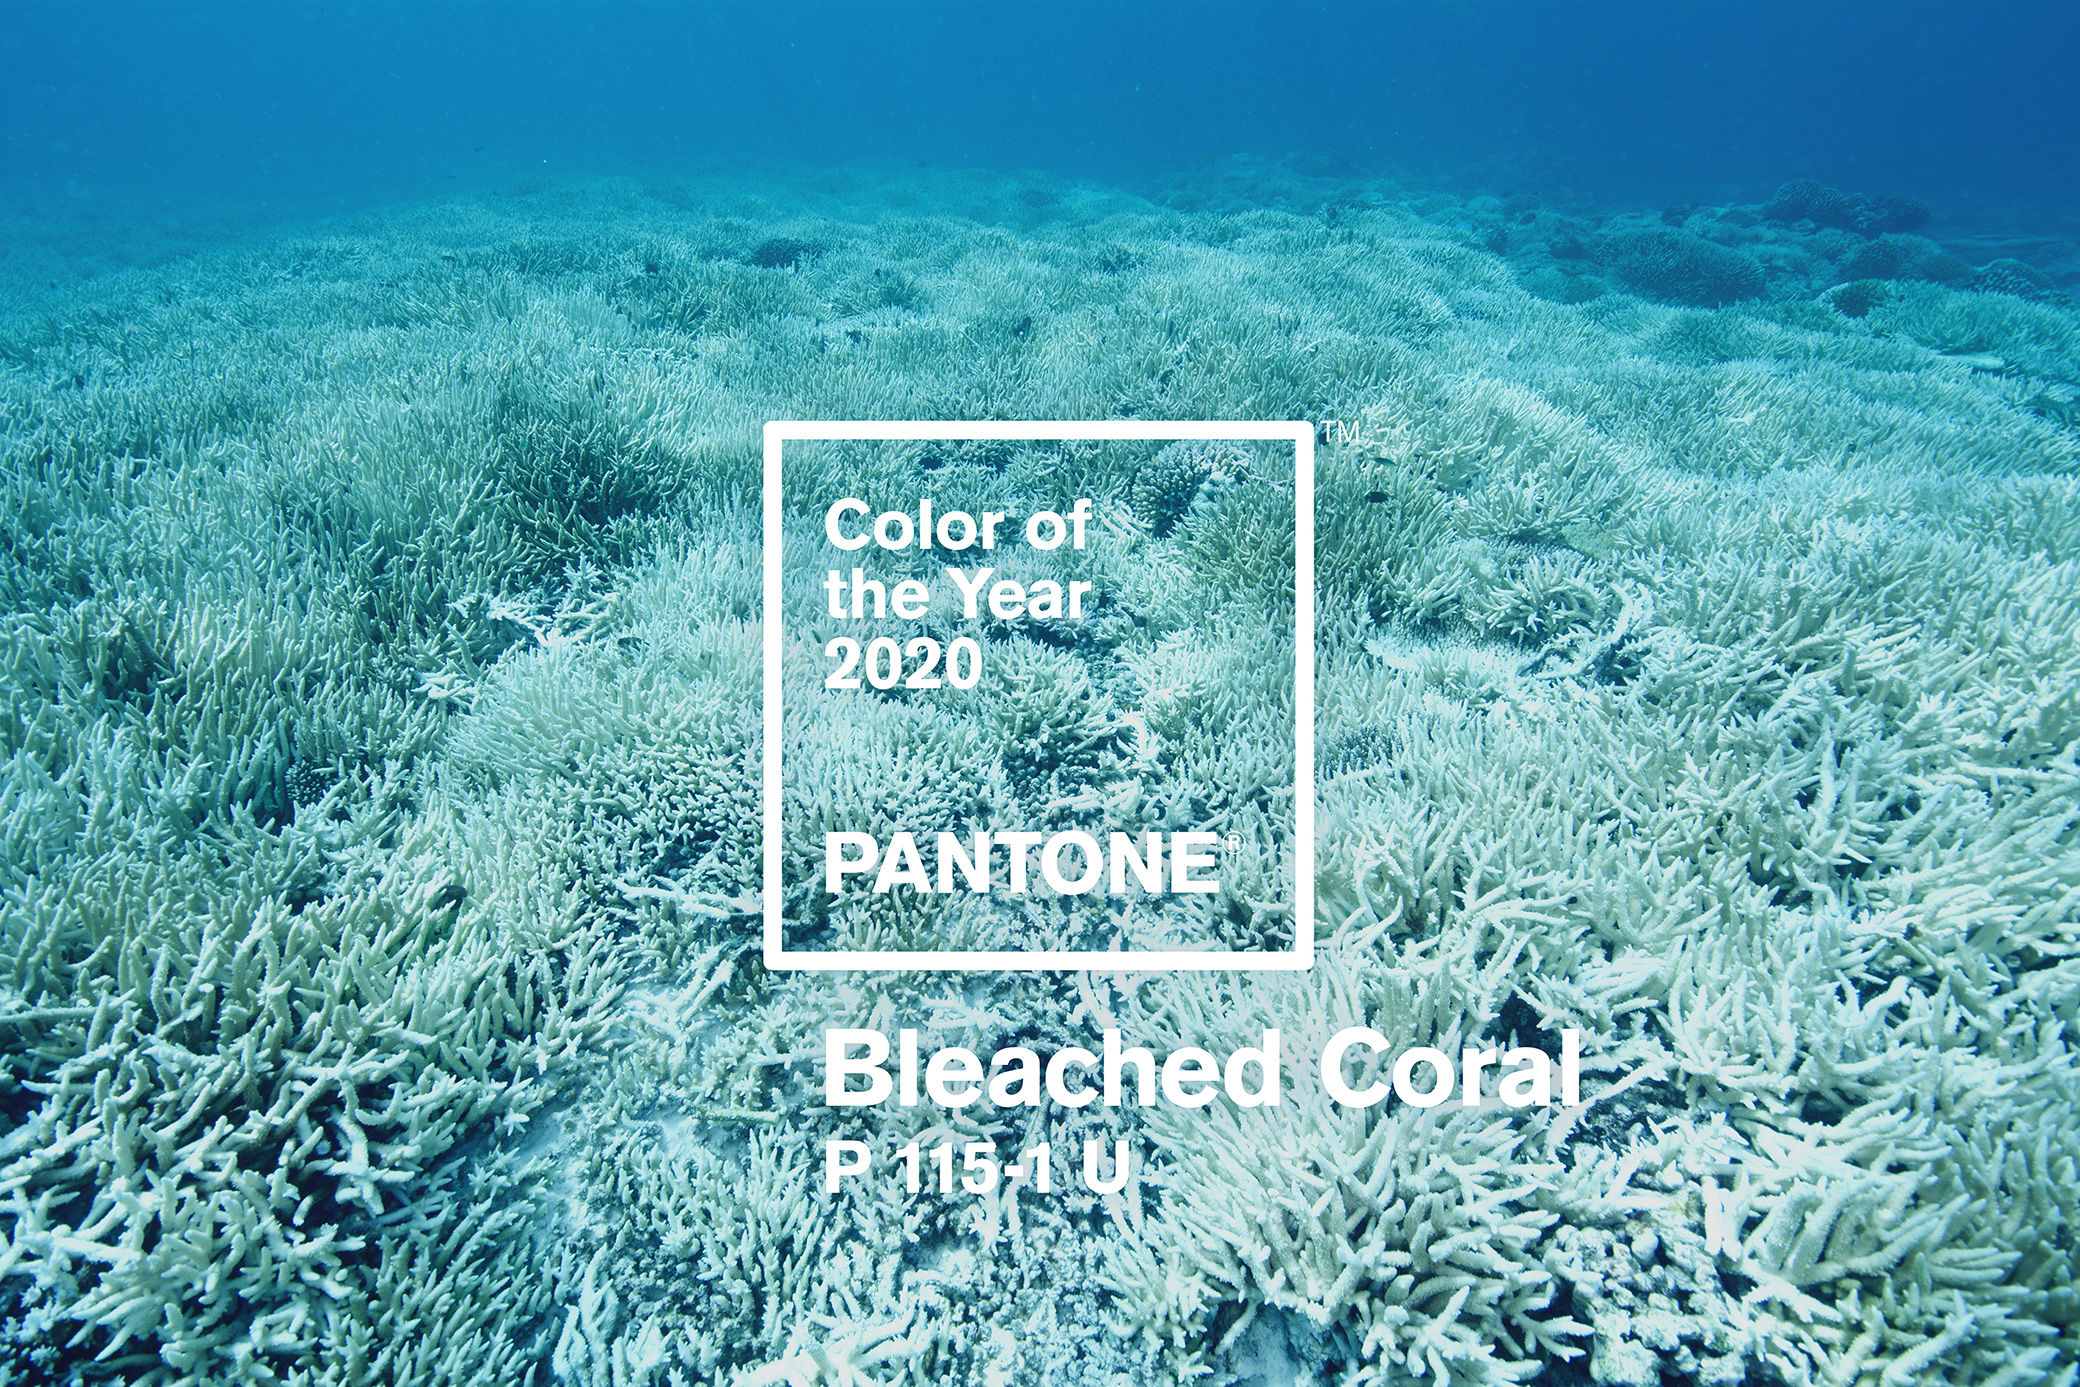 Pantone Colors 2020.Pantone Color Of The Year 2020 Bleached Coral Making A